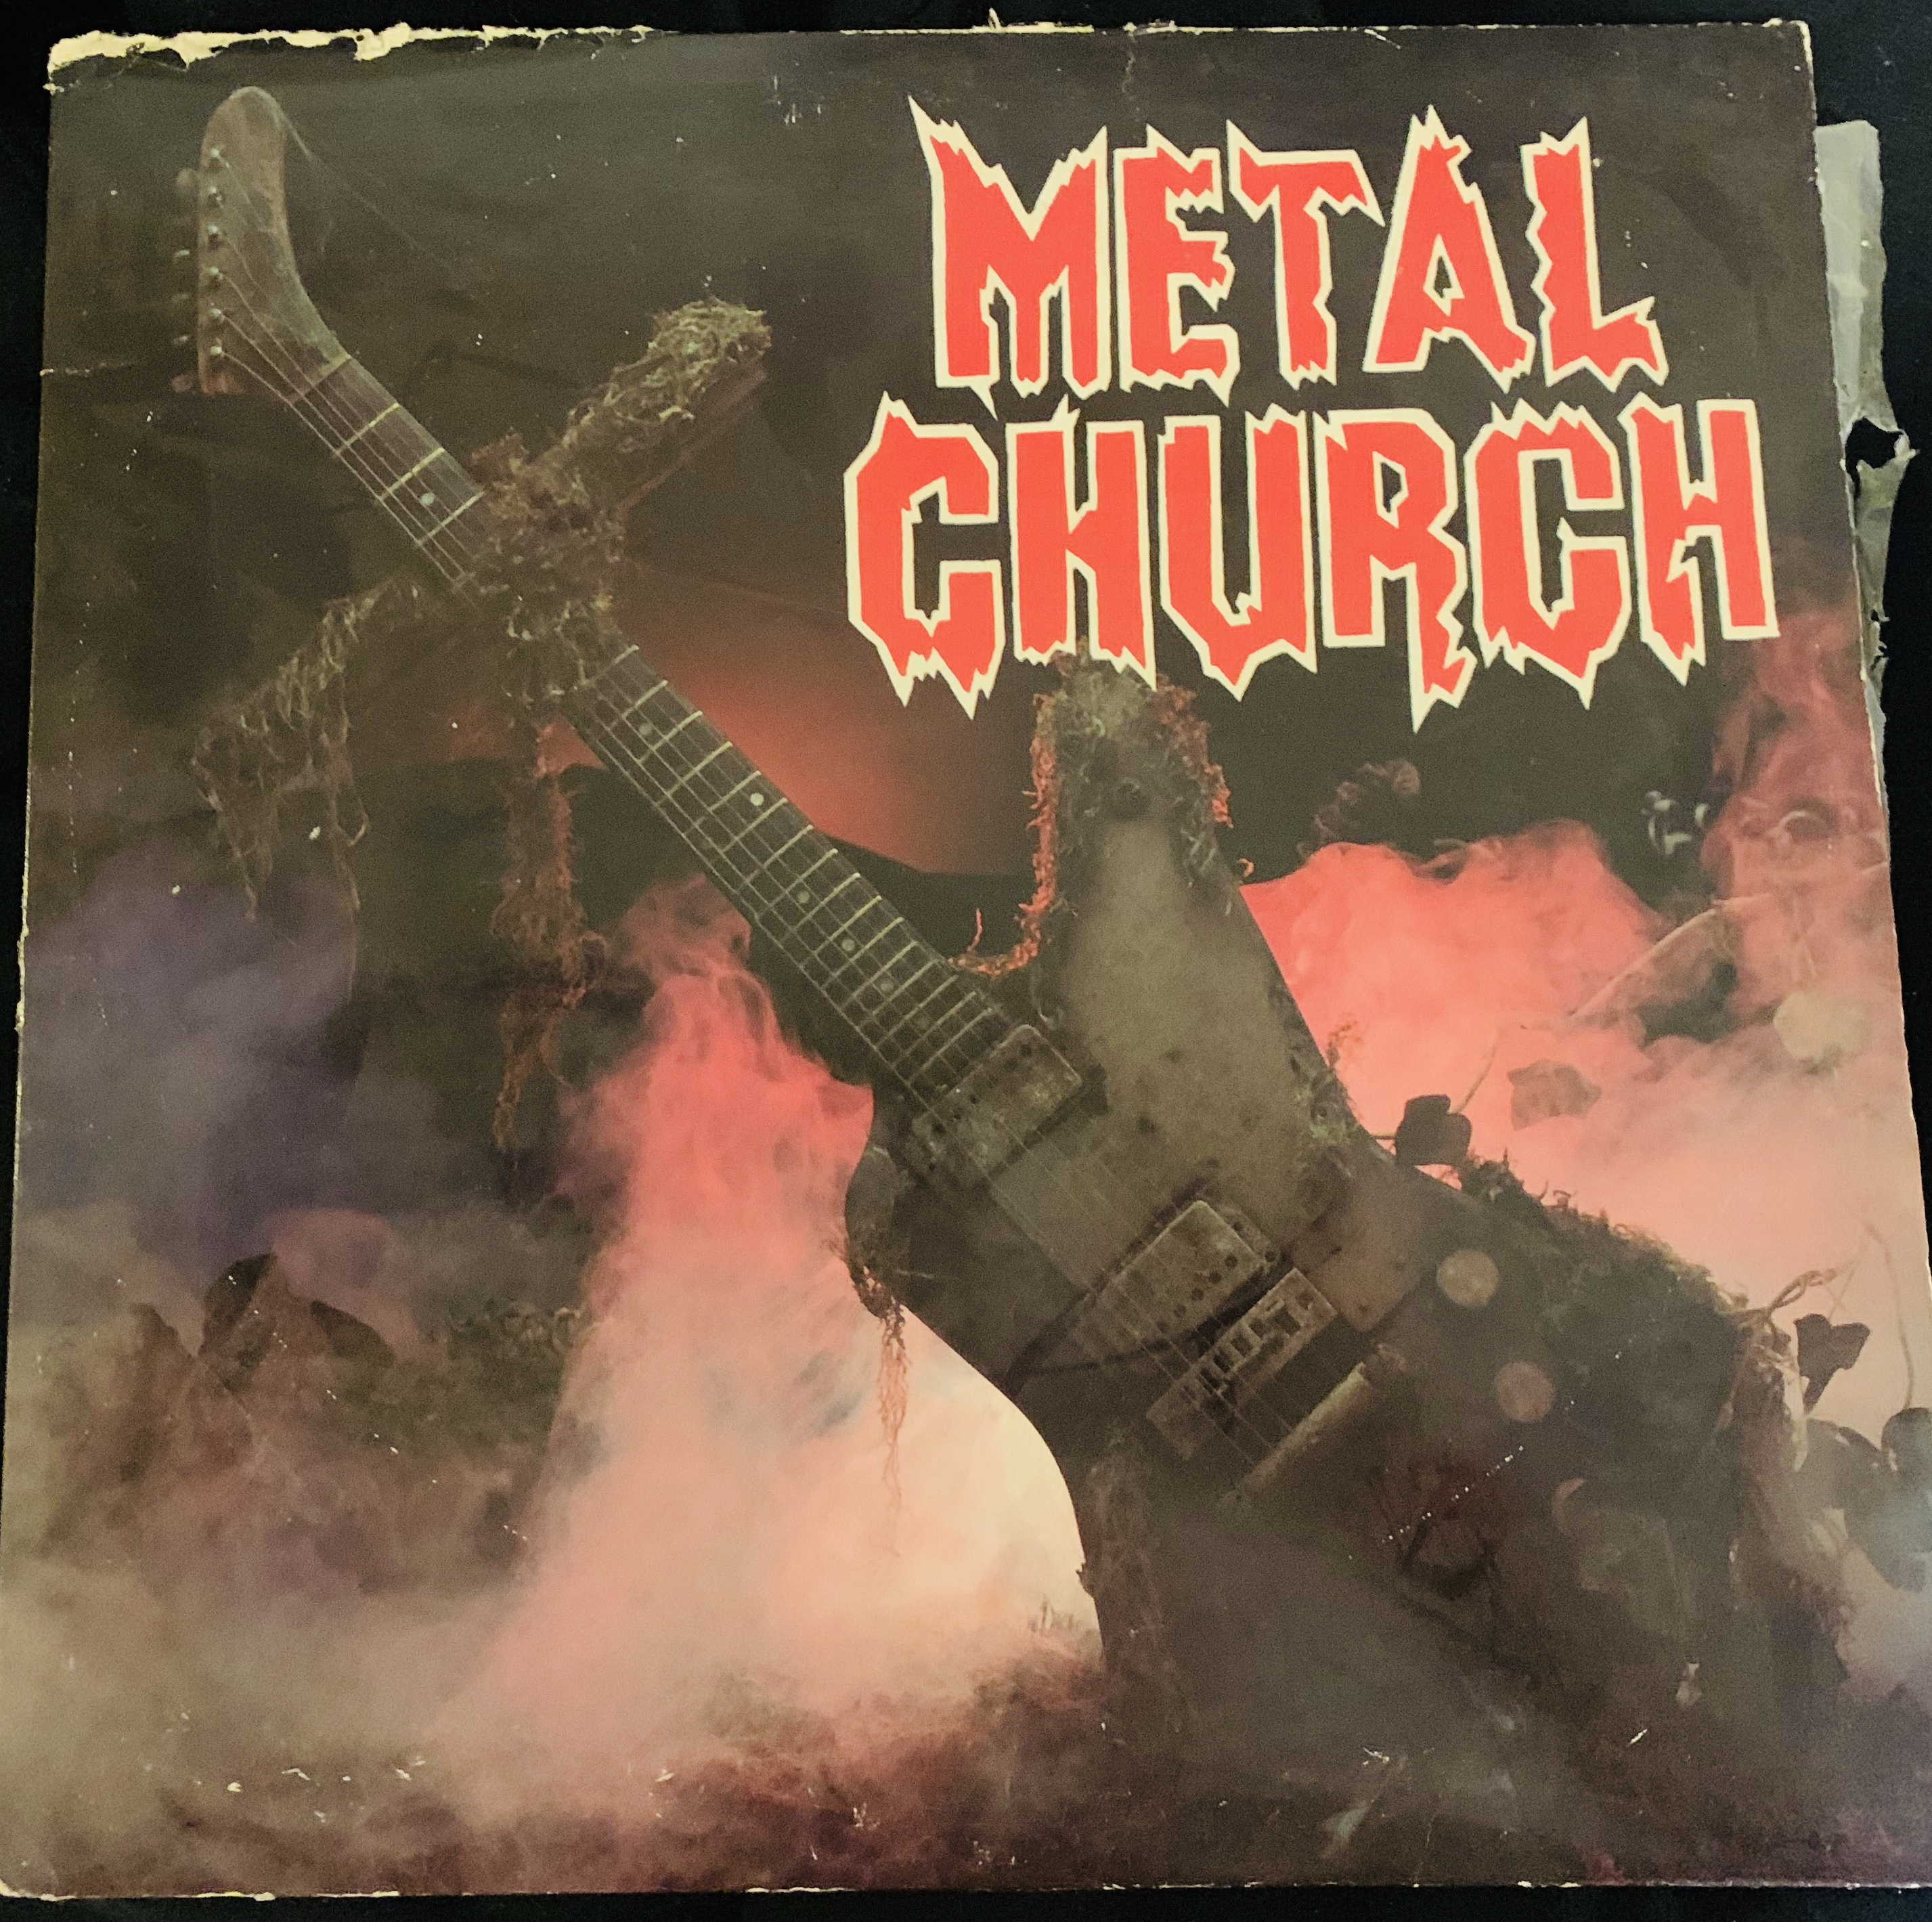 METAL CHURCH FIRST ALBUM